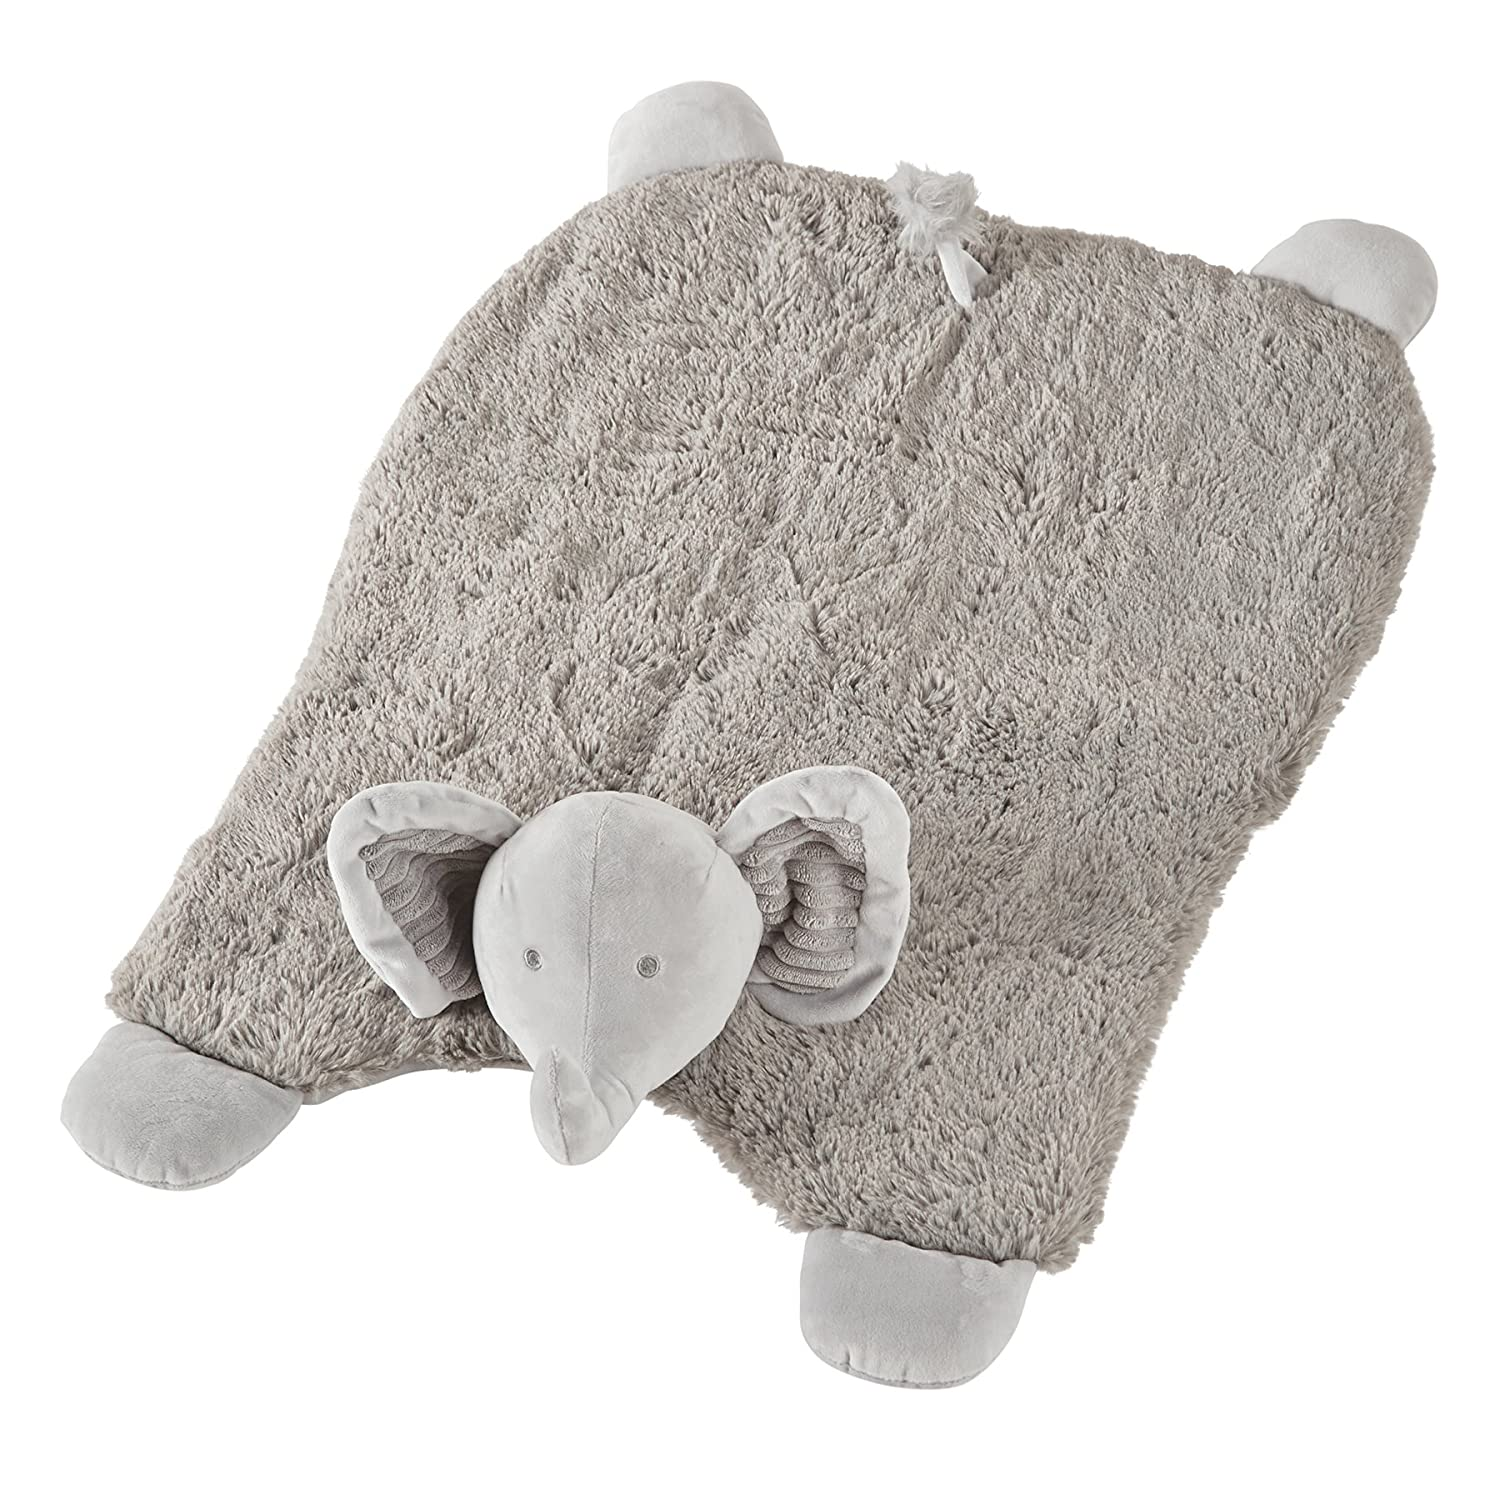 Mud Pie Plush Mat Tummy Time Nursery D cor, Puppy